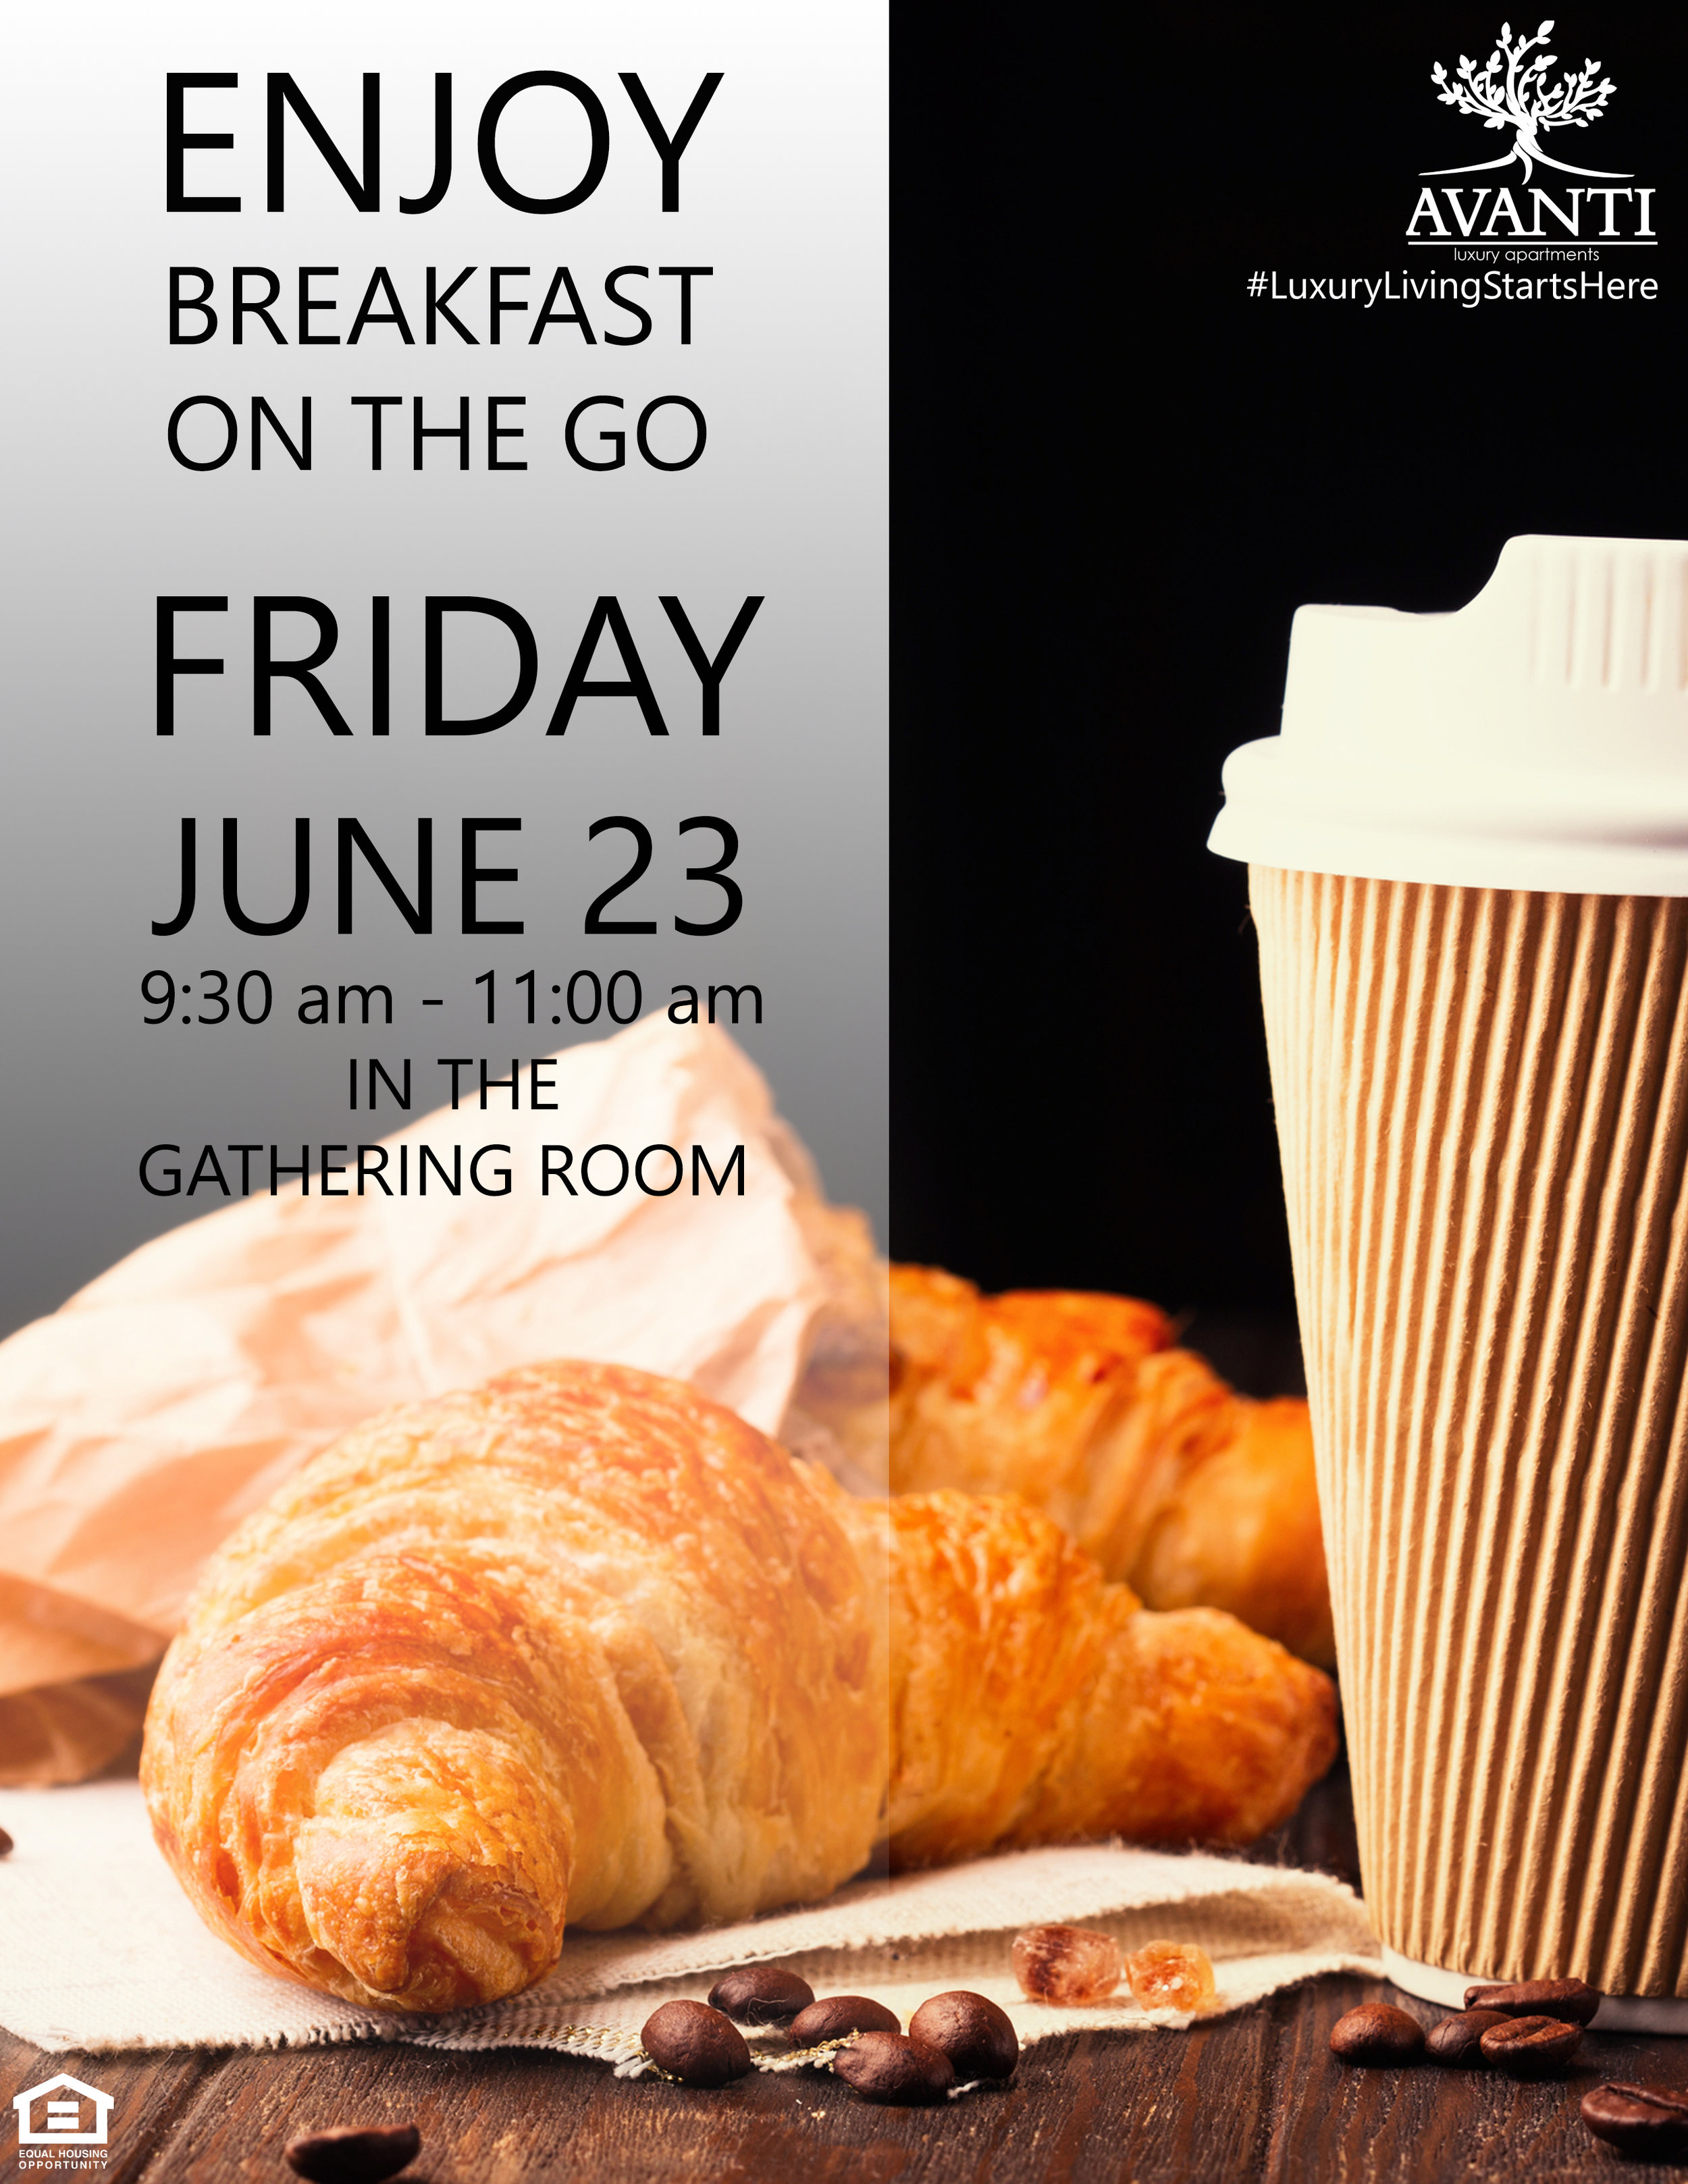 Breakfast on the Go at Avanti Luxury Apartments in Bel Air, MD